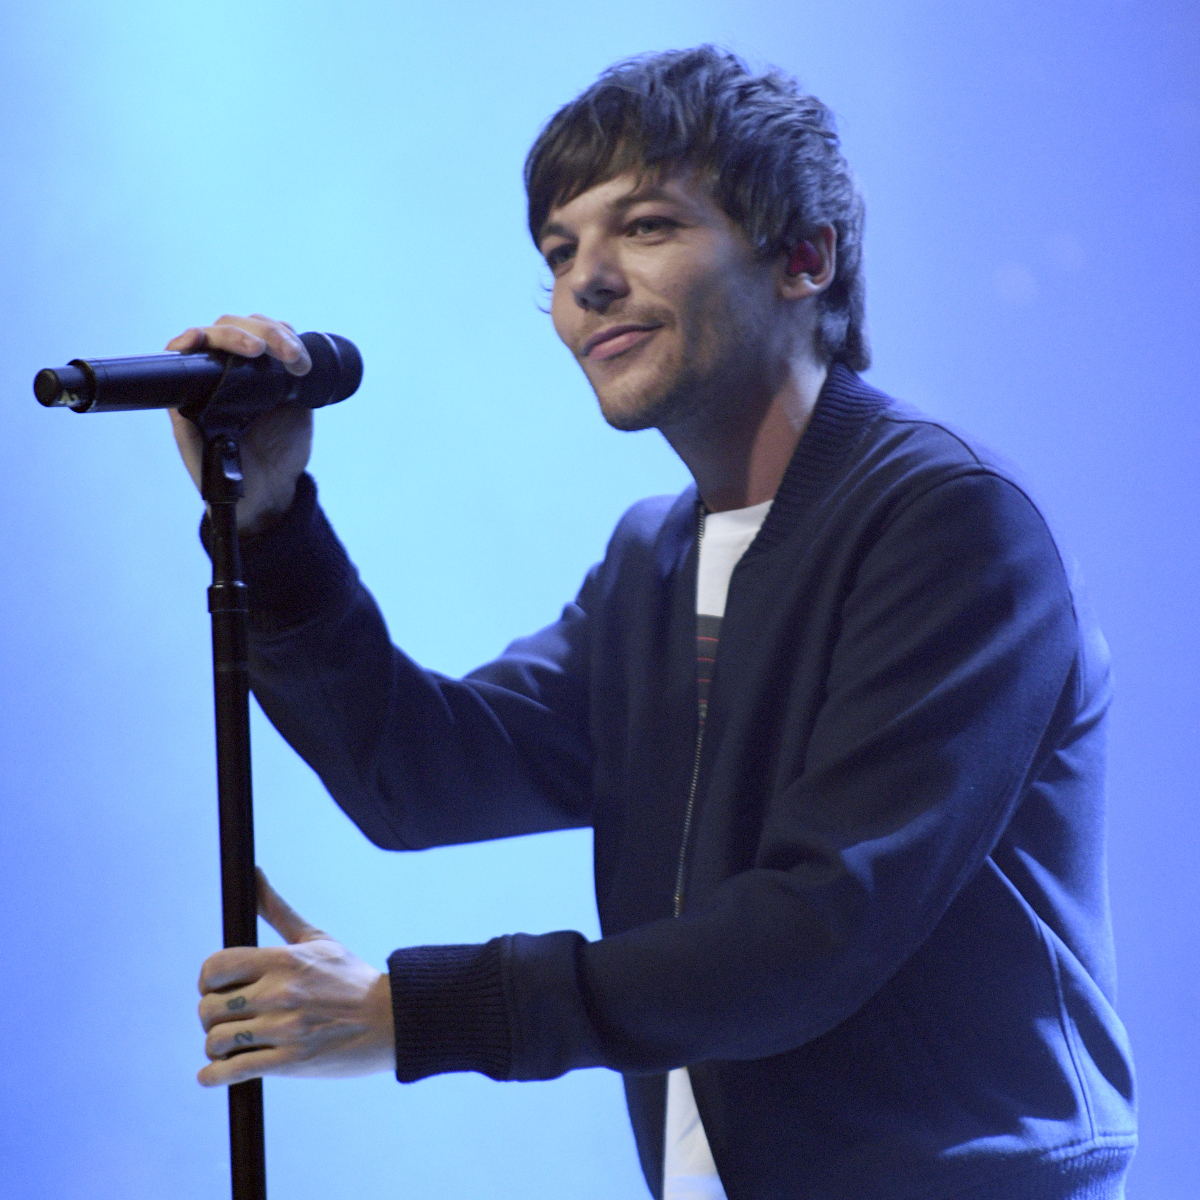 Louis Tomlinson REVEALS he won't return to THIS show after questions about his mom & sister's deaths: Find Out